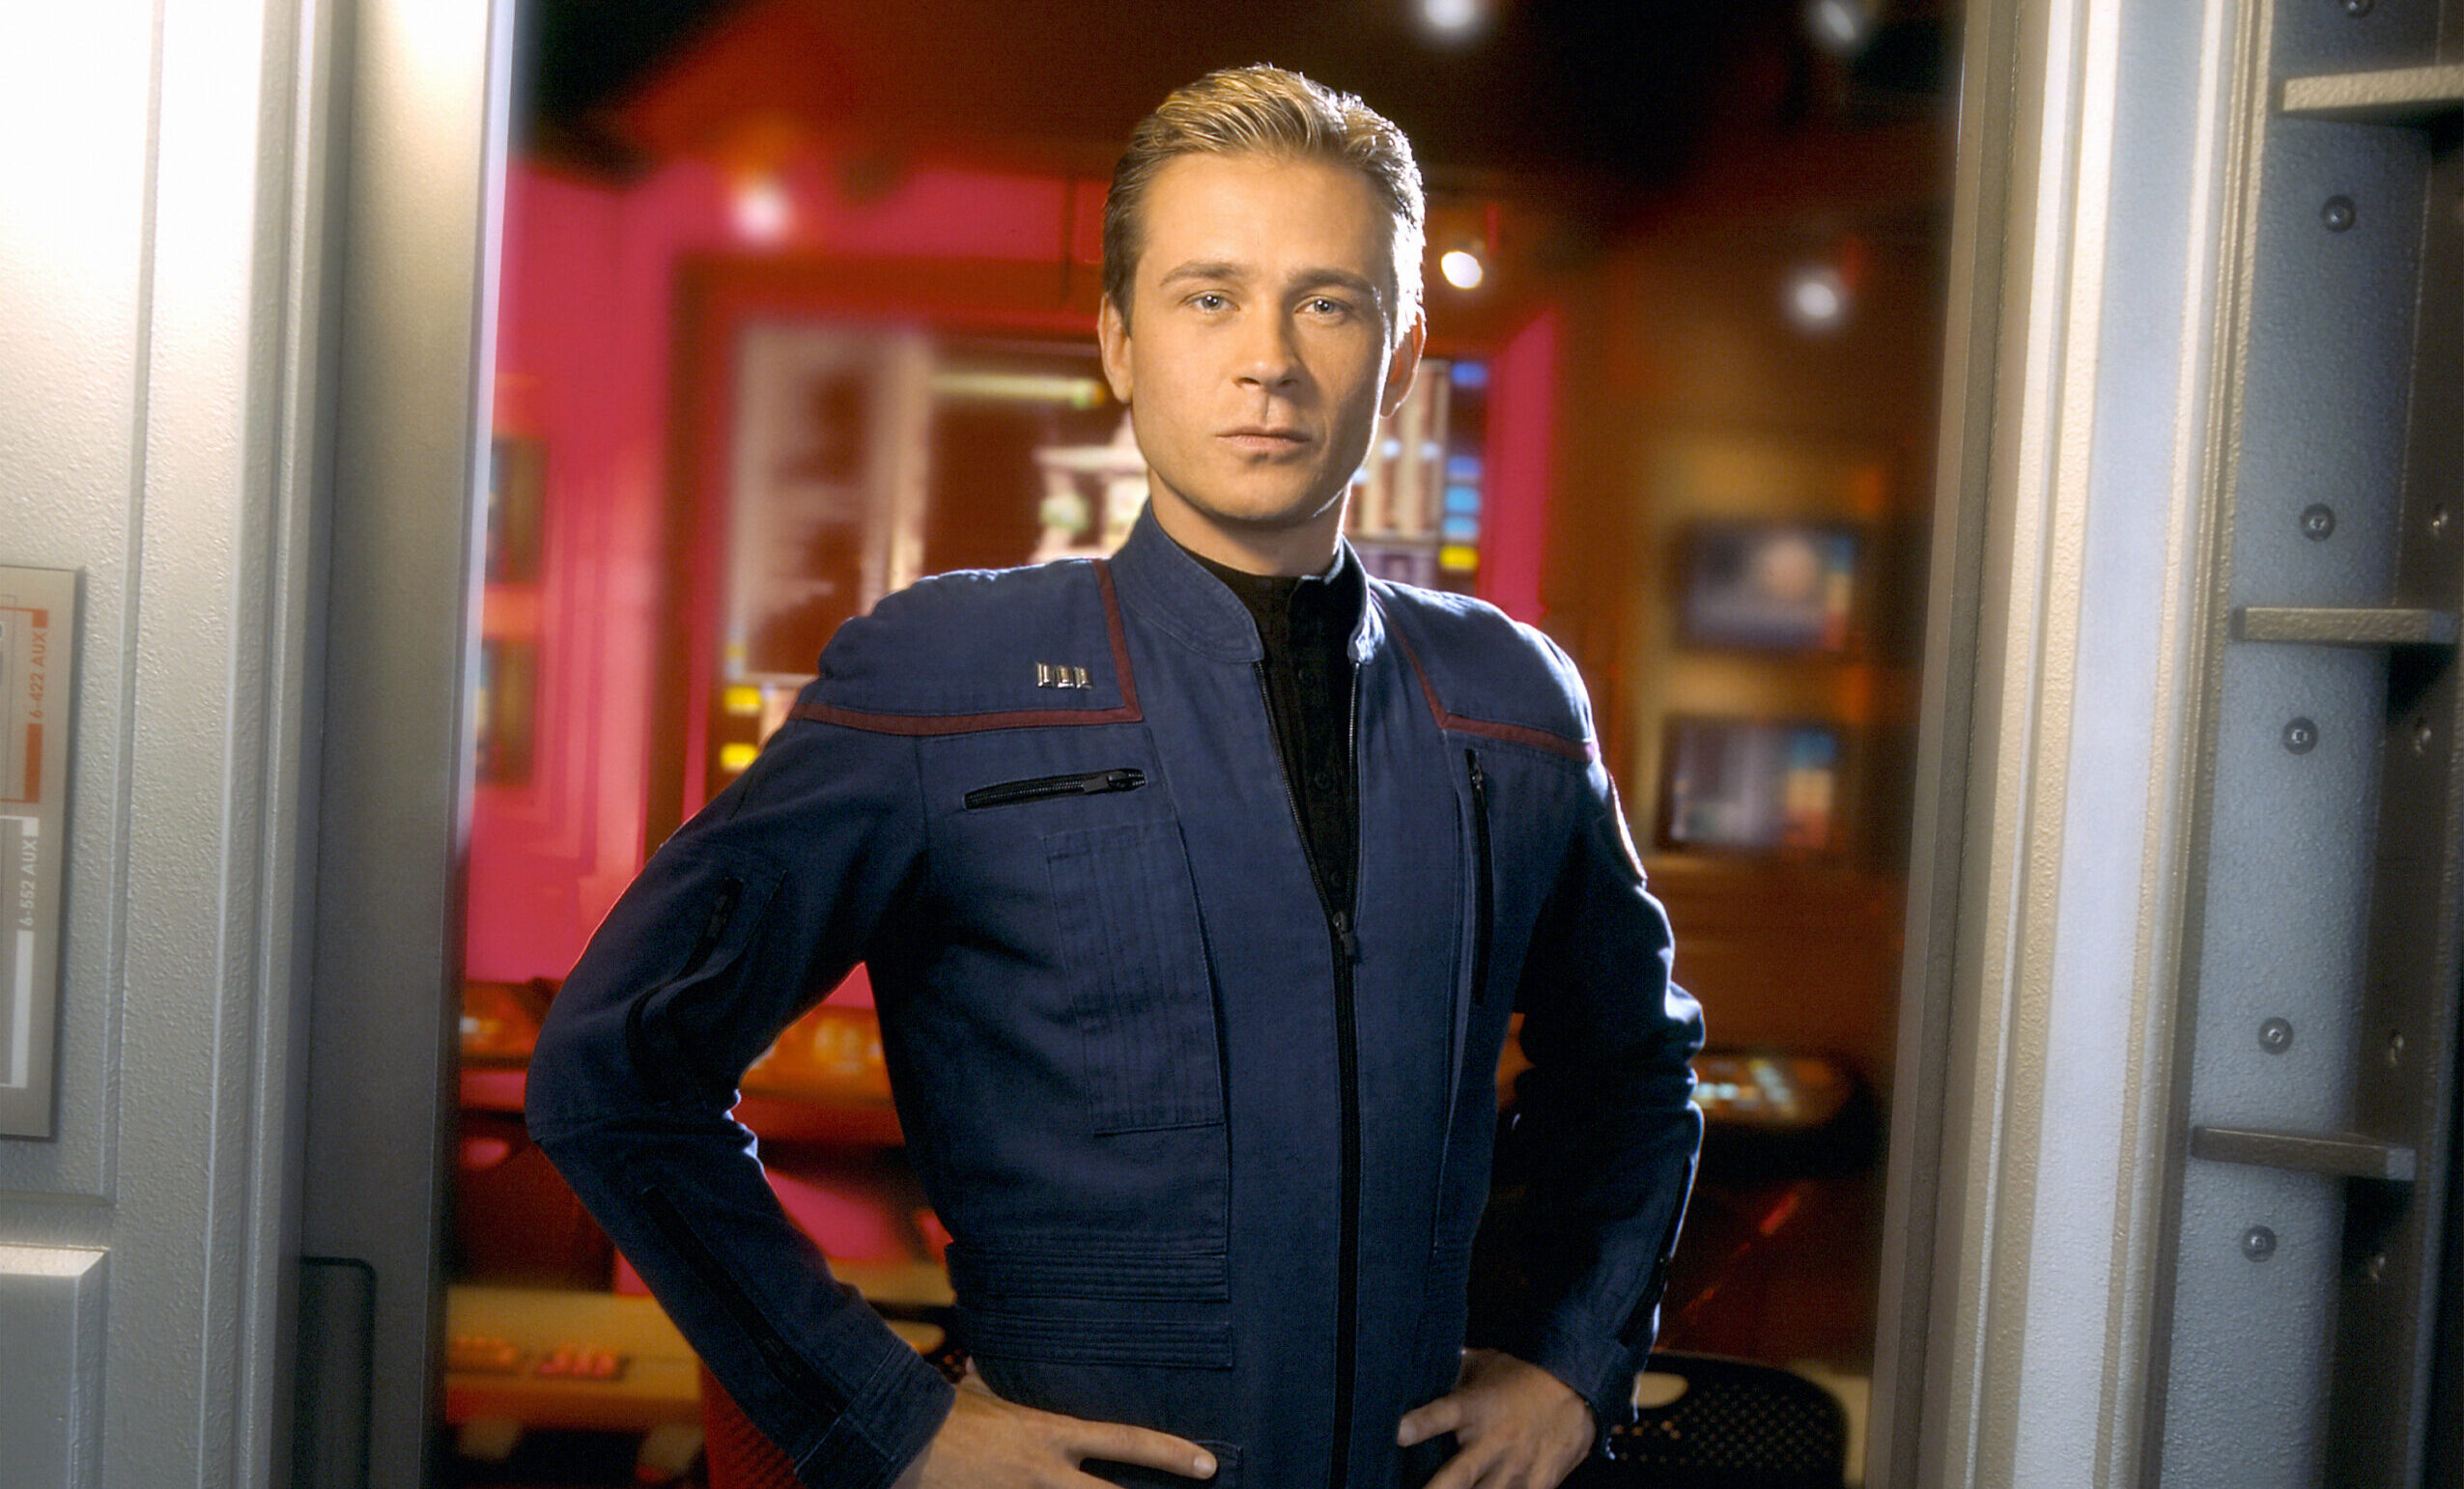 Connor Trinneer: What Happened To Him After Star Trek